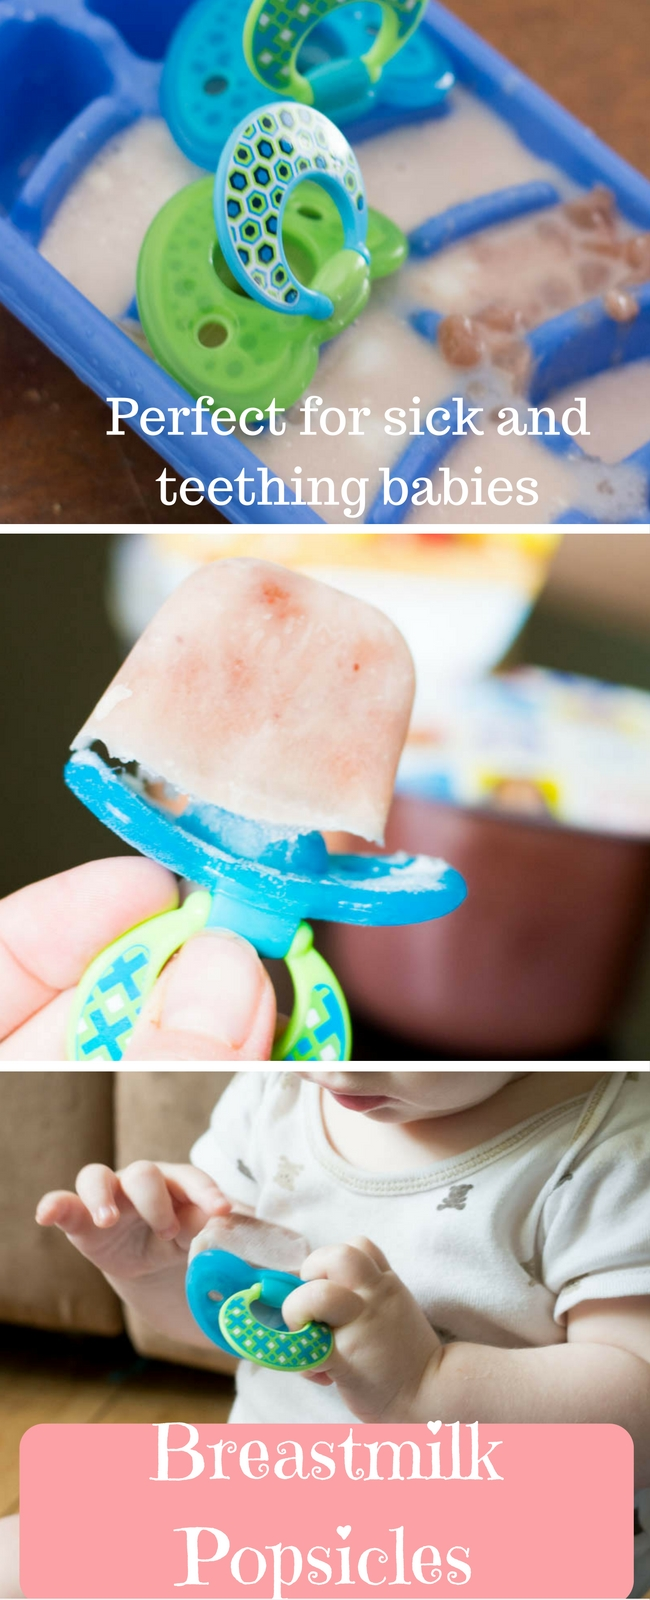 Breastmilk popsicles are great for sick and teething babies, or to give them a healthy treat that makes them feel like the big kids! These ones use baby food purees to make them even tastier!  via @clarkscondensed